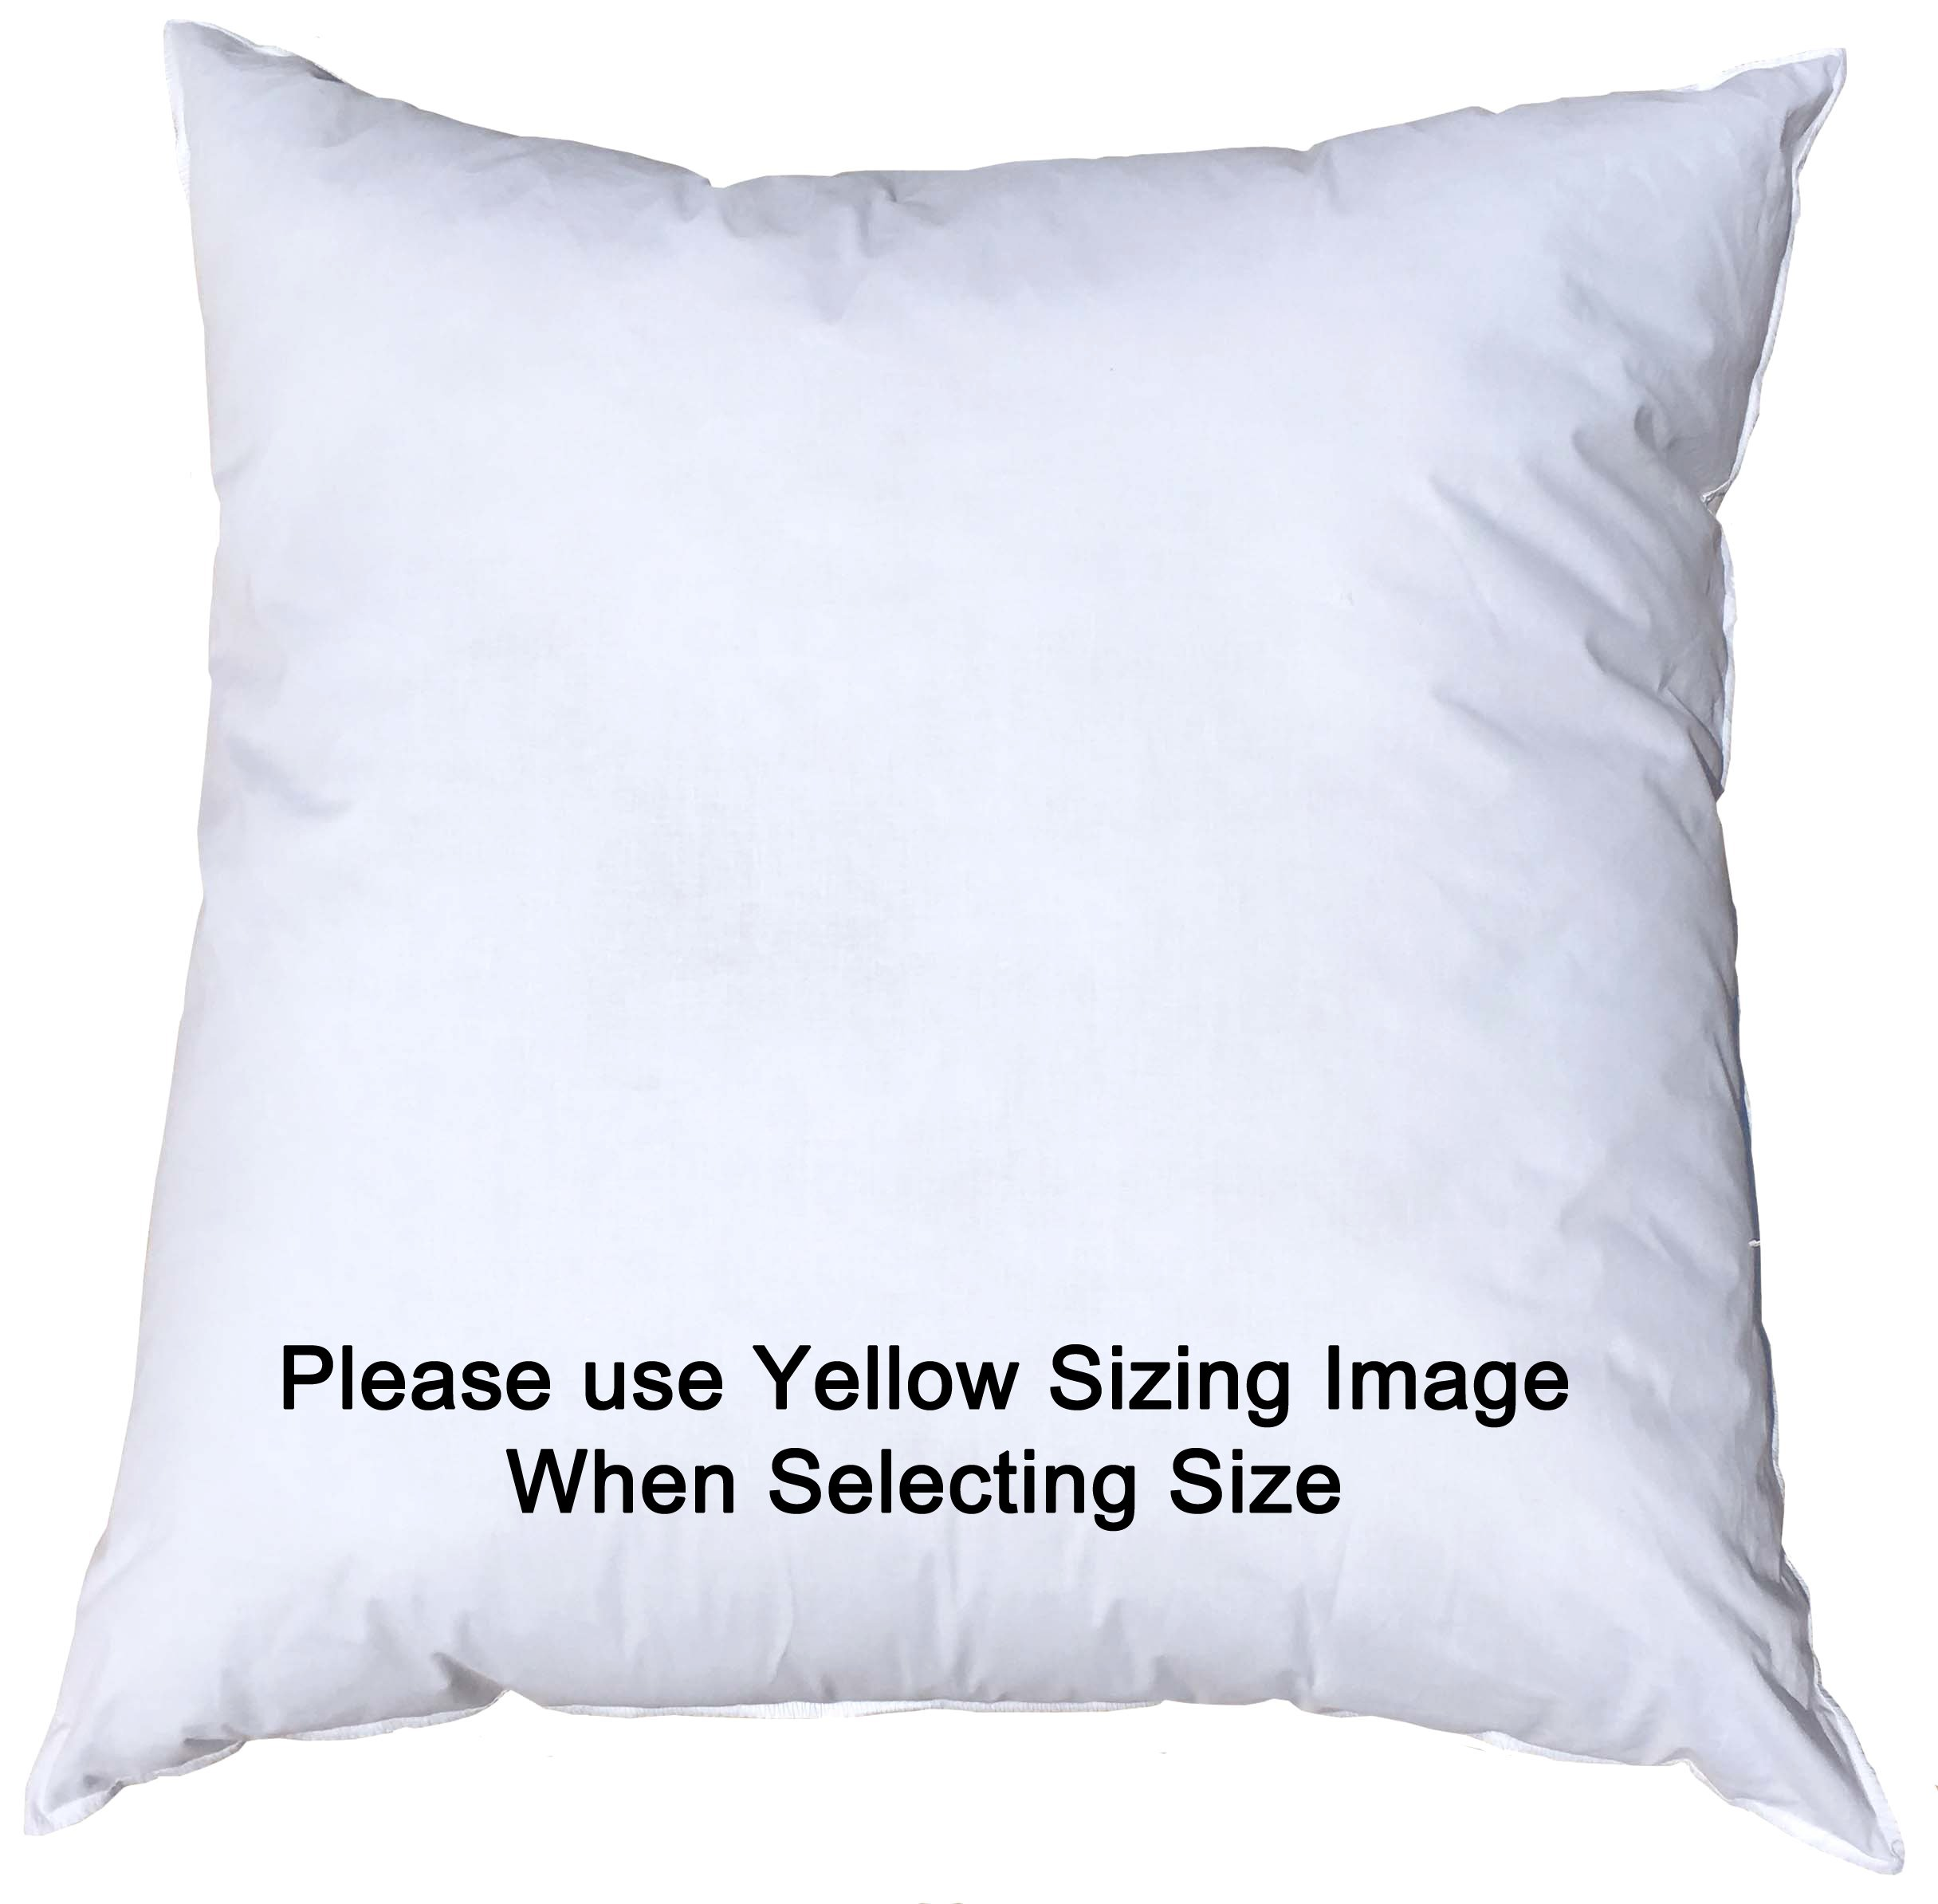 27x27 Inch Pillowflex Premium Polyester Filled Pillow Form Insert - Machine Washable - European Square - Made In USA